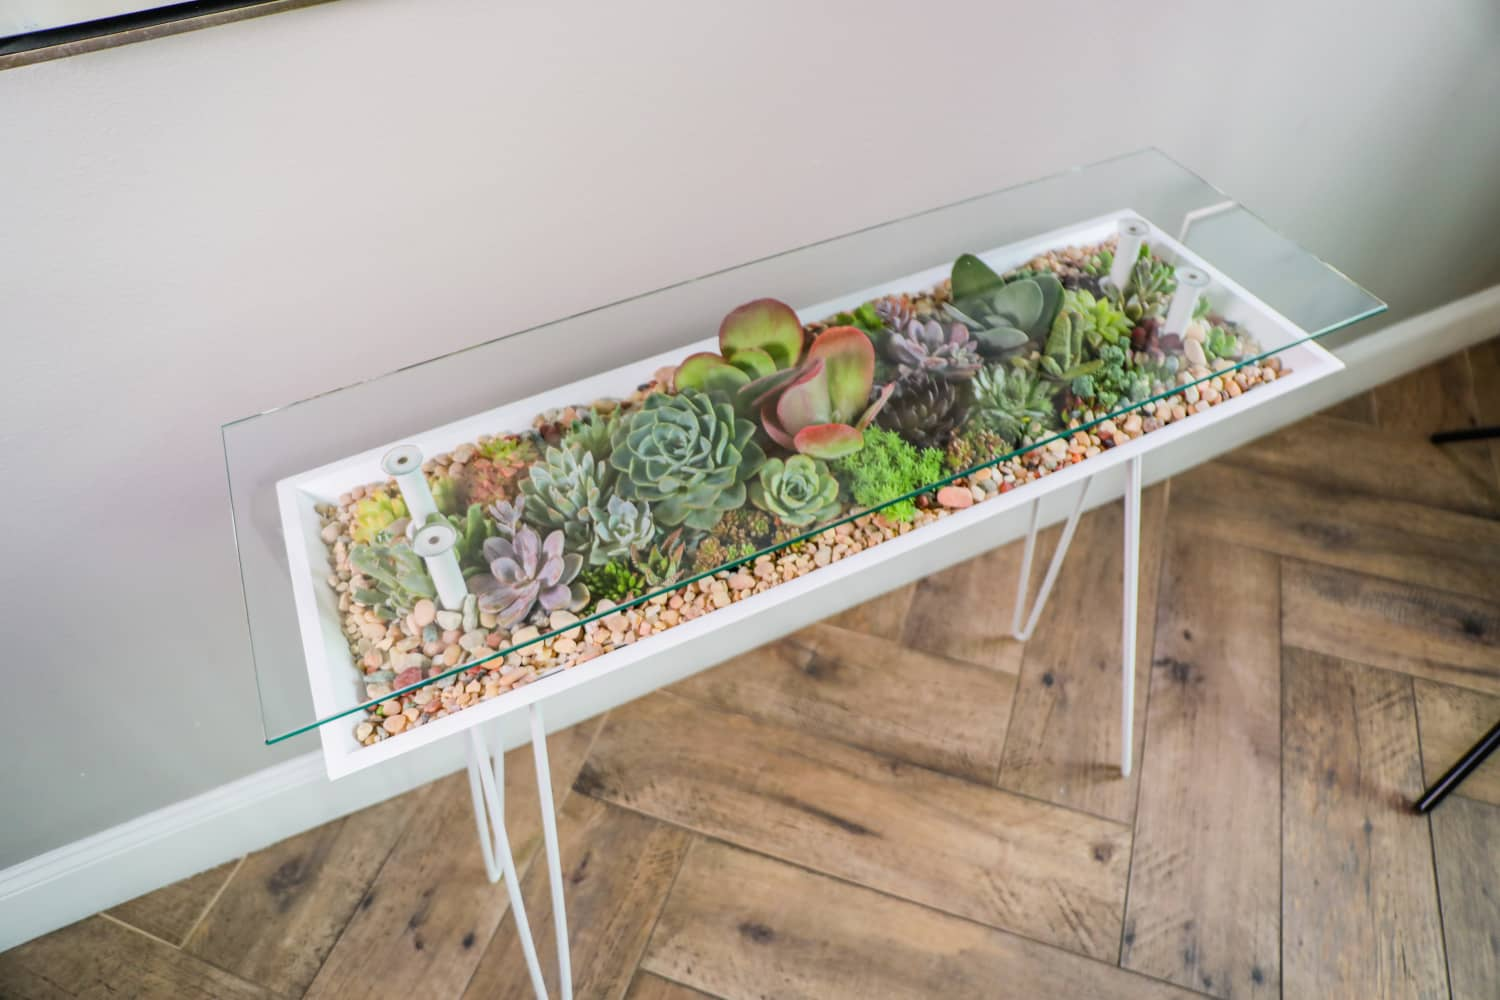 This Genius Table Also Functions as a Succulent Garden